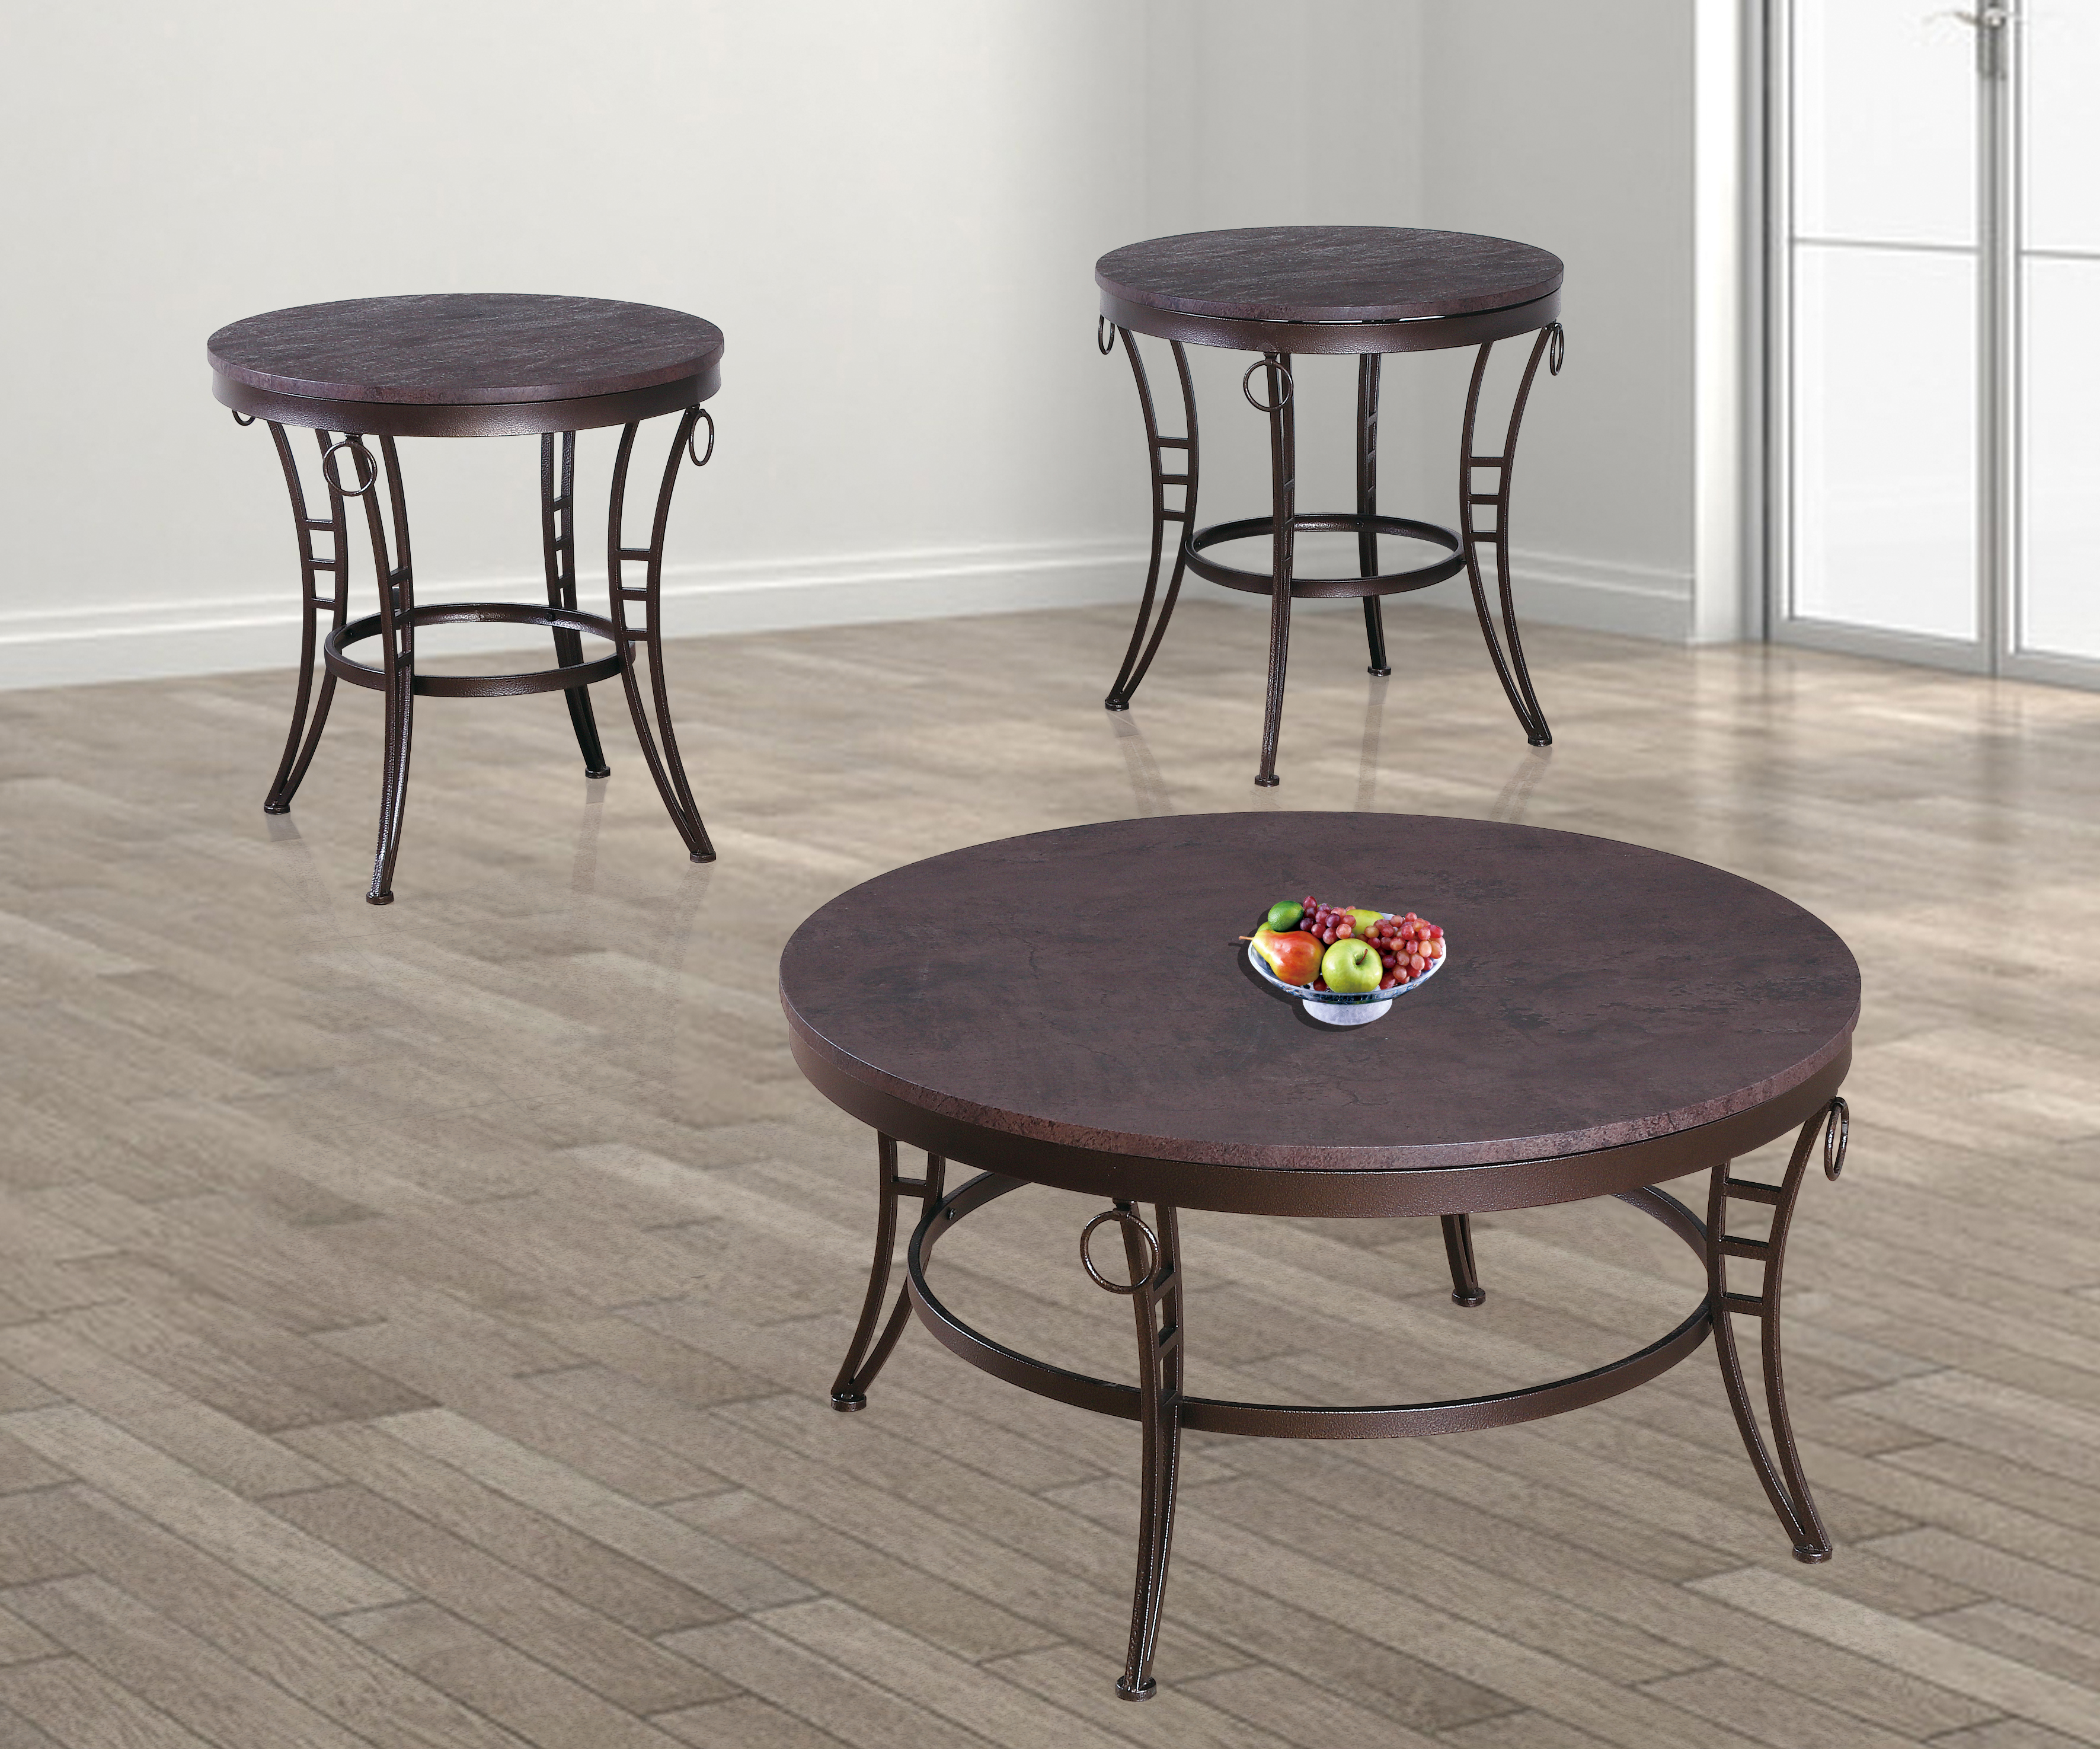 GS-CT854 3pc coffee table set